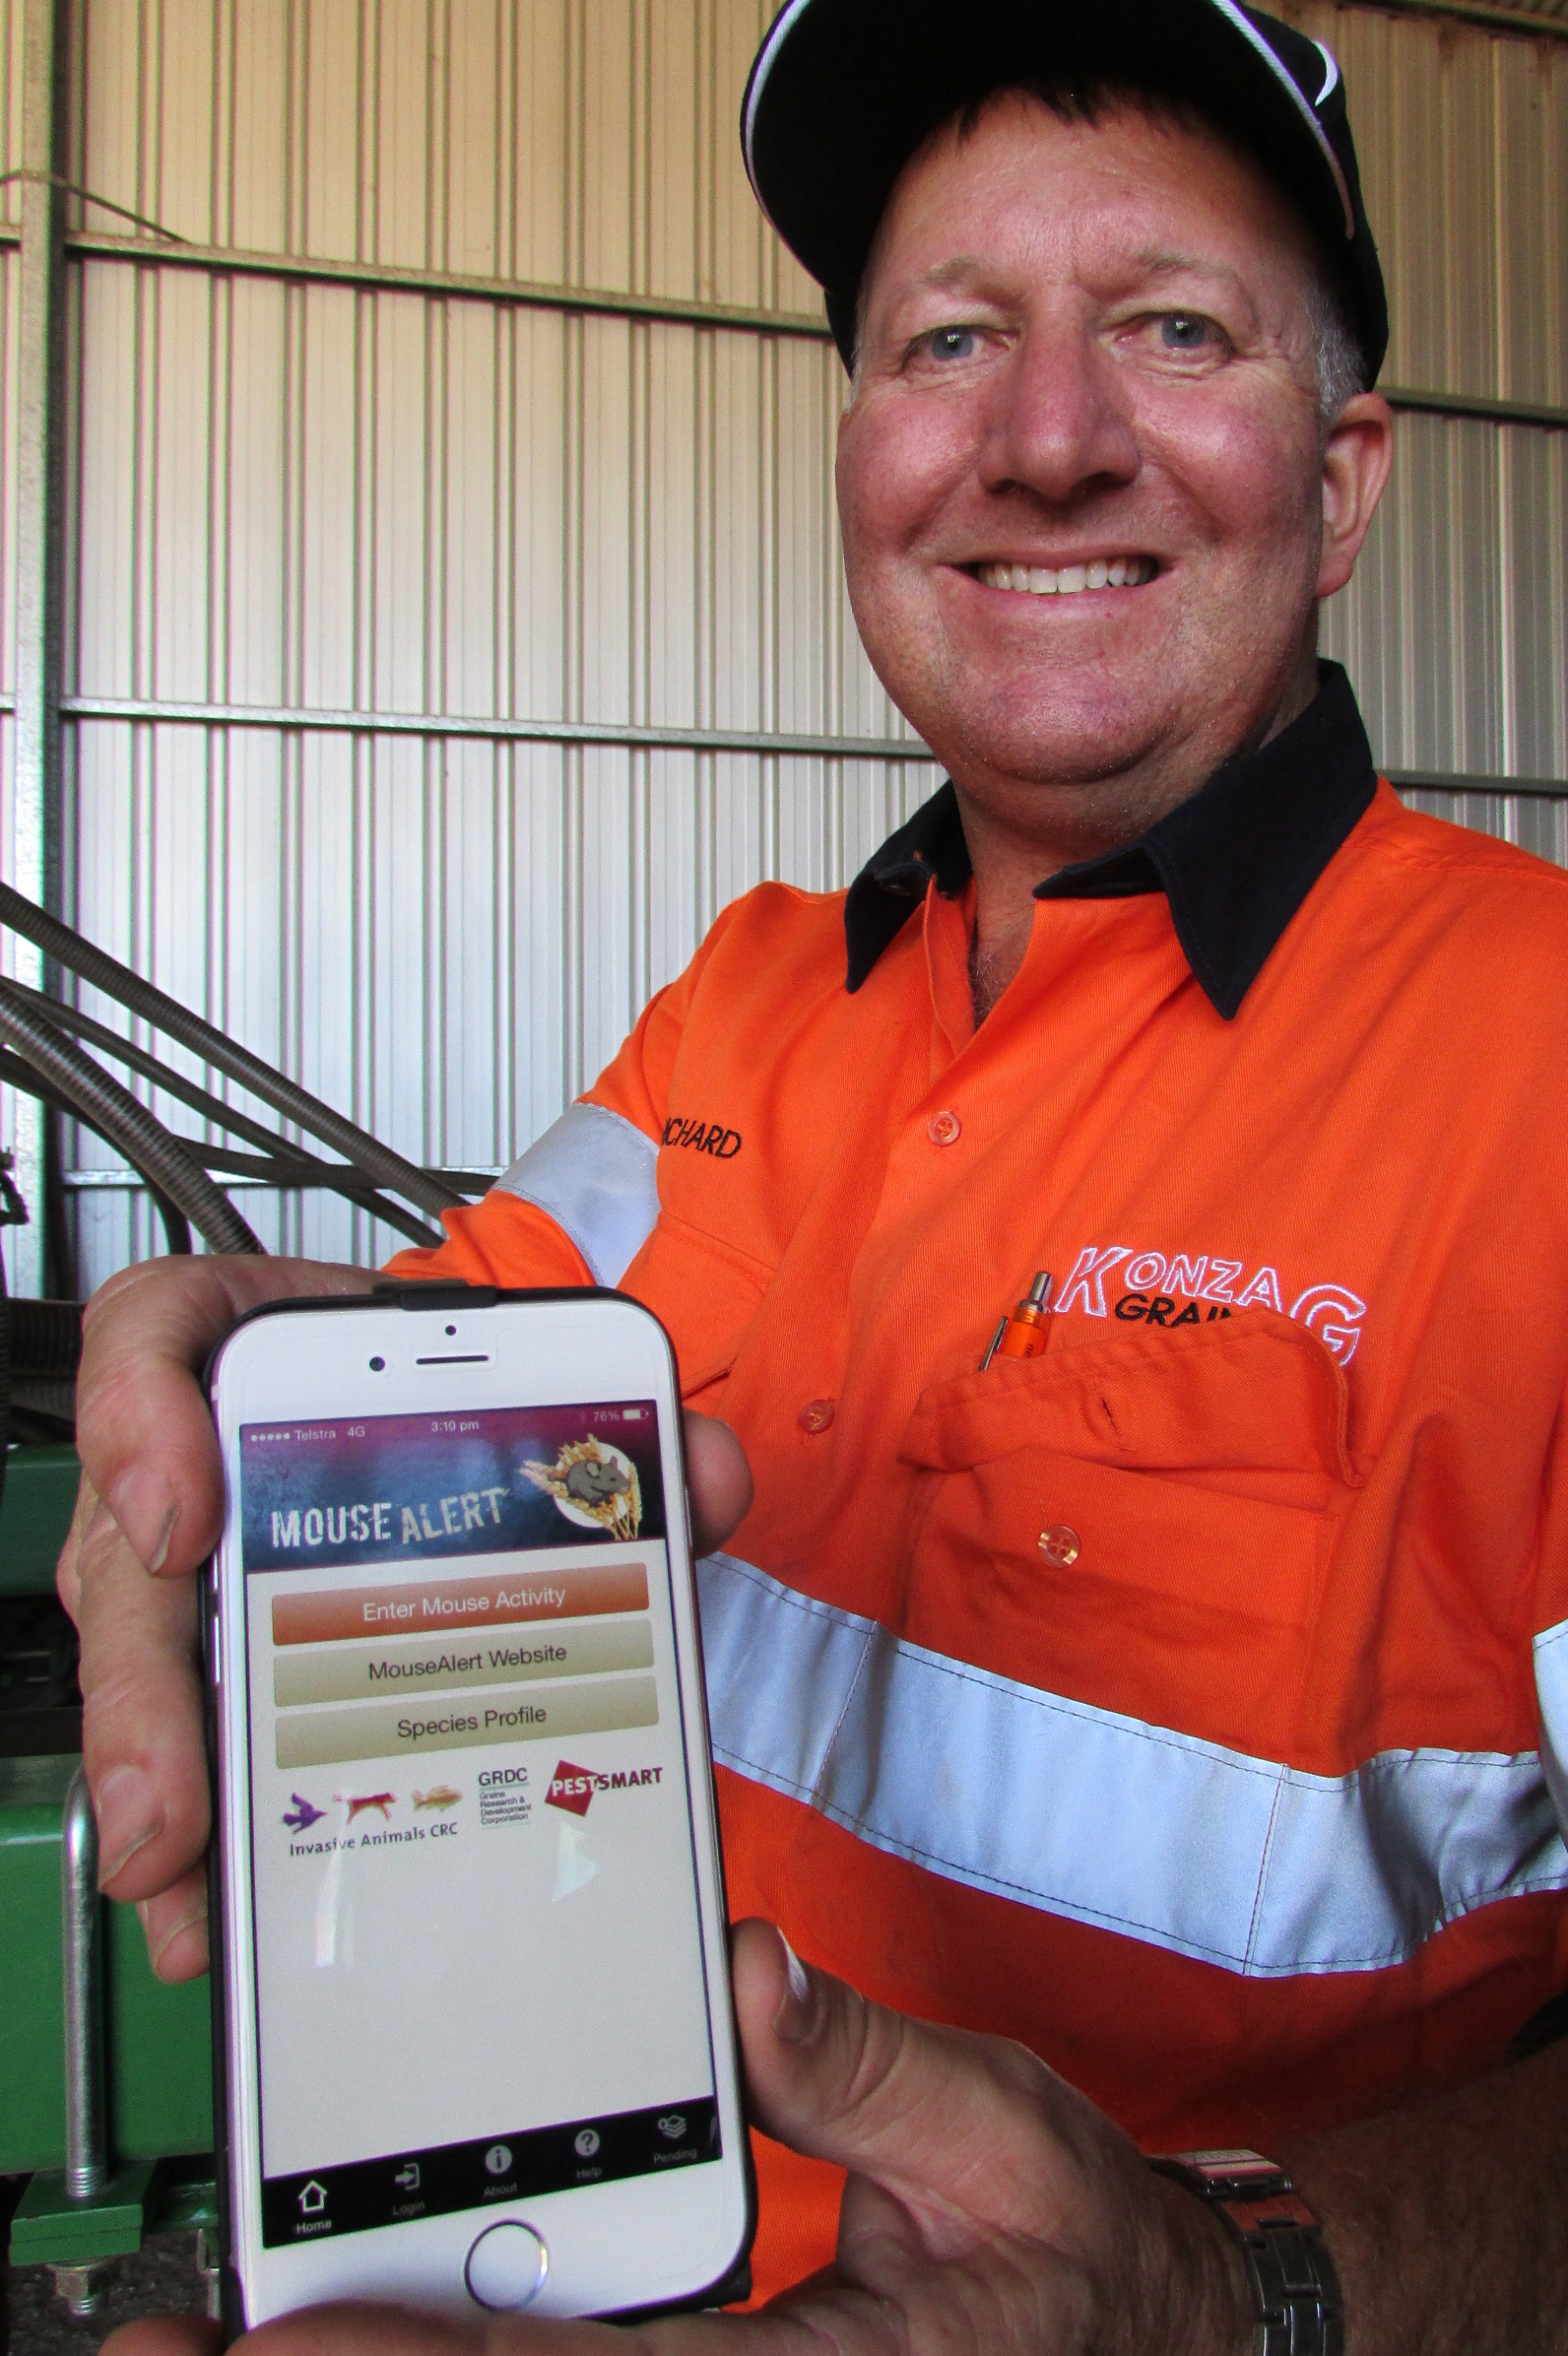 Grain grower Richard Konzag, of Mallala in South Australia, holding his mobile phone and displaying the MouseAlert app.